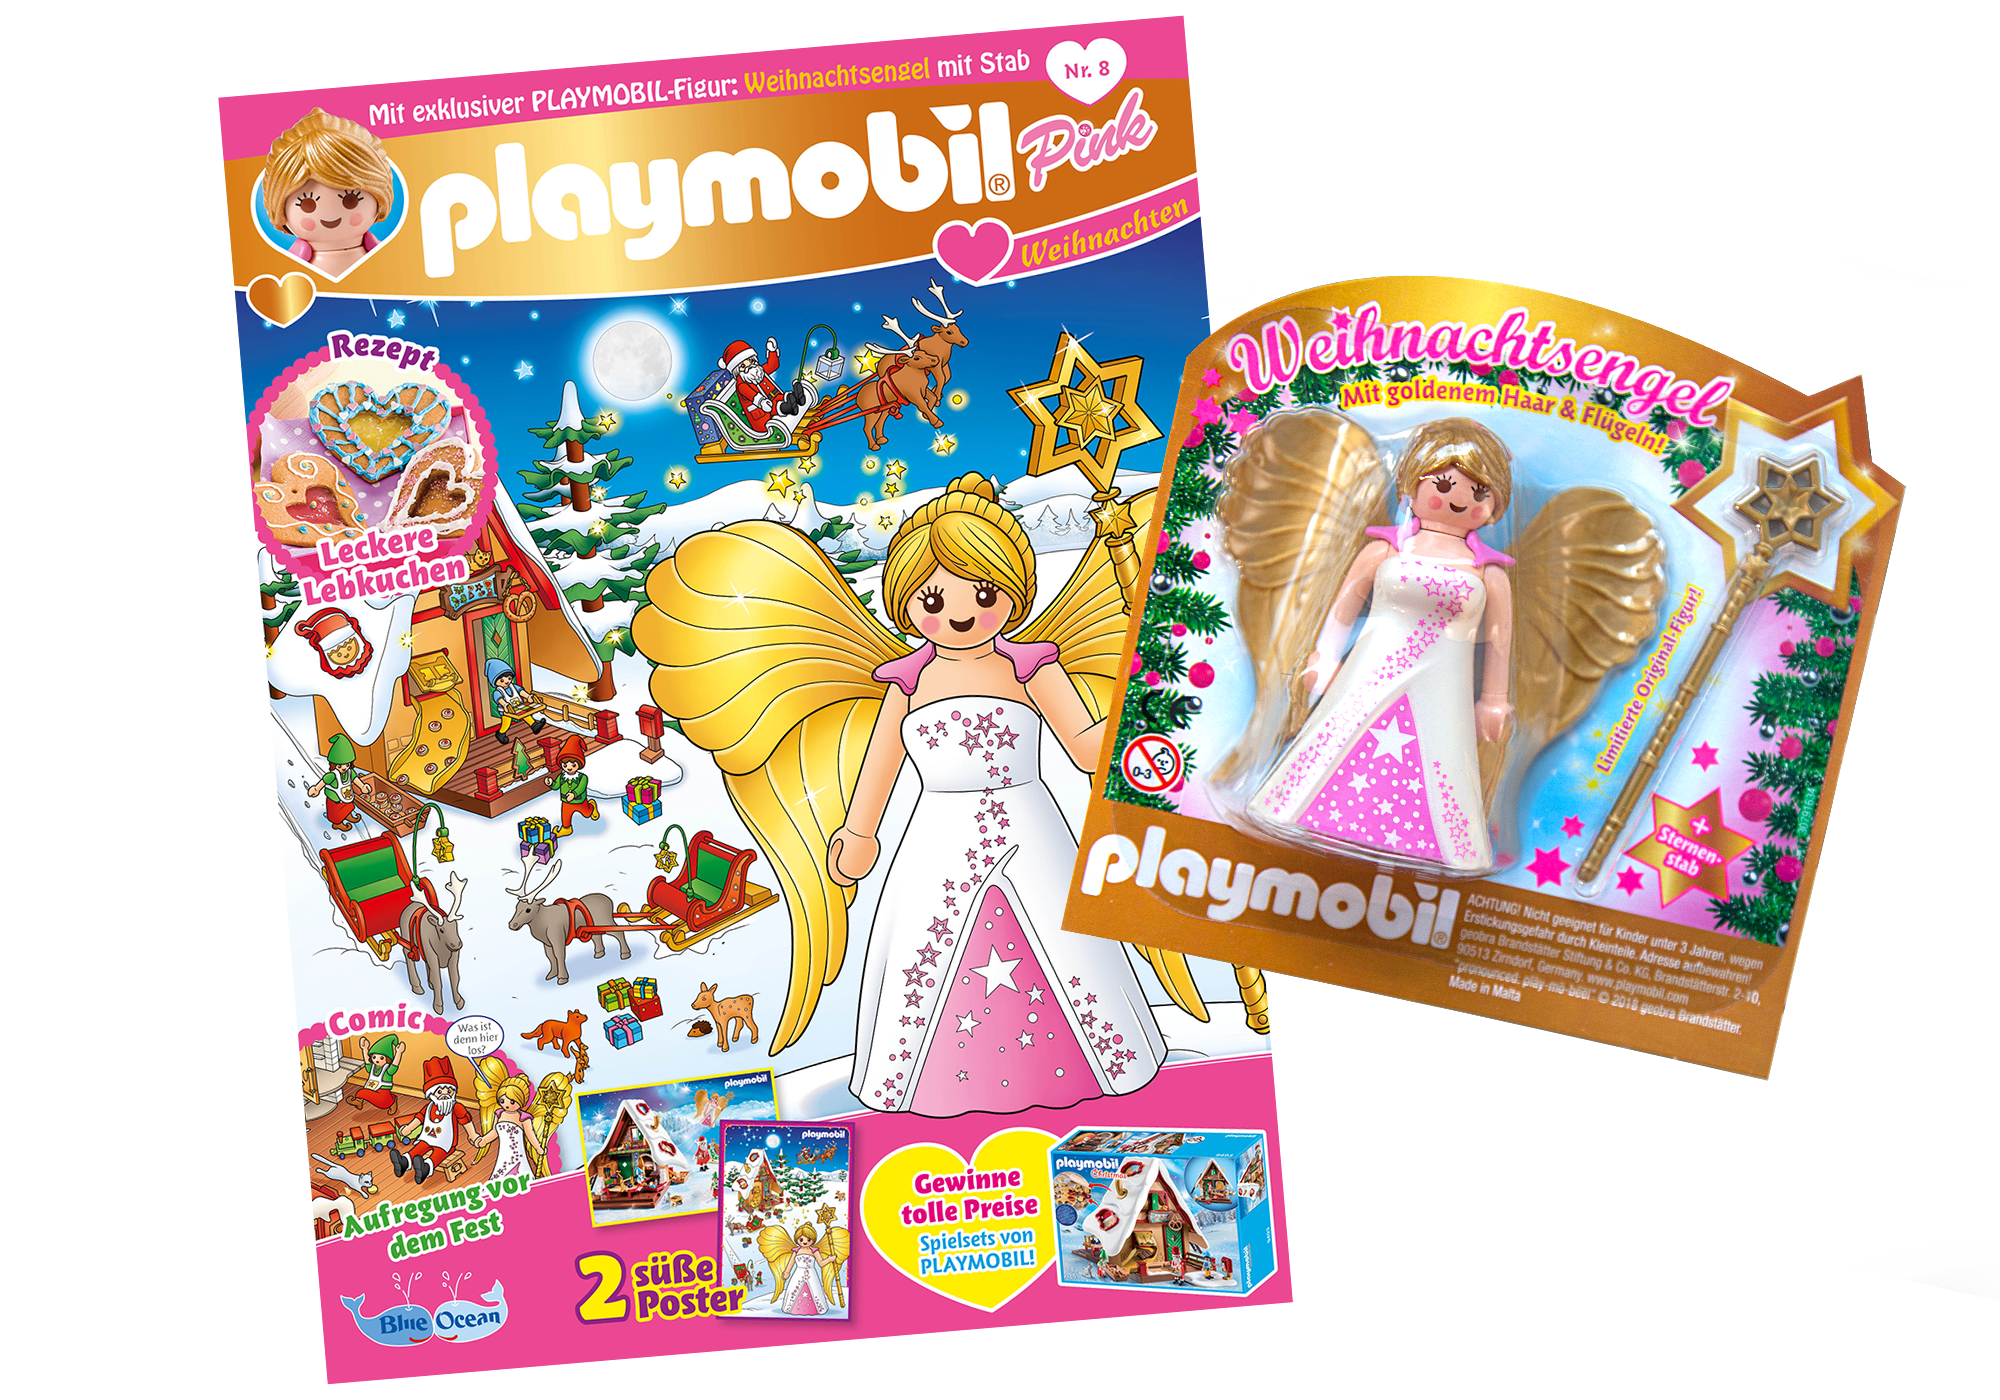 http://media.playmobil.com/i/playmobil/80617_product_detail/PLAYMOBIL-Magazin Pink 8/2018 (Heft 40)